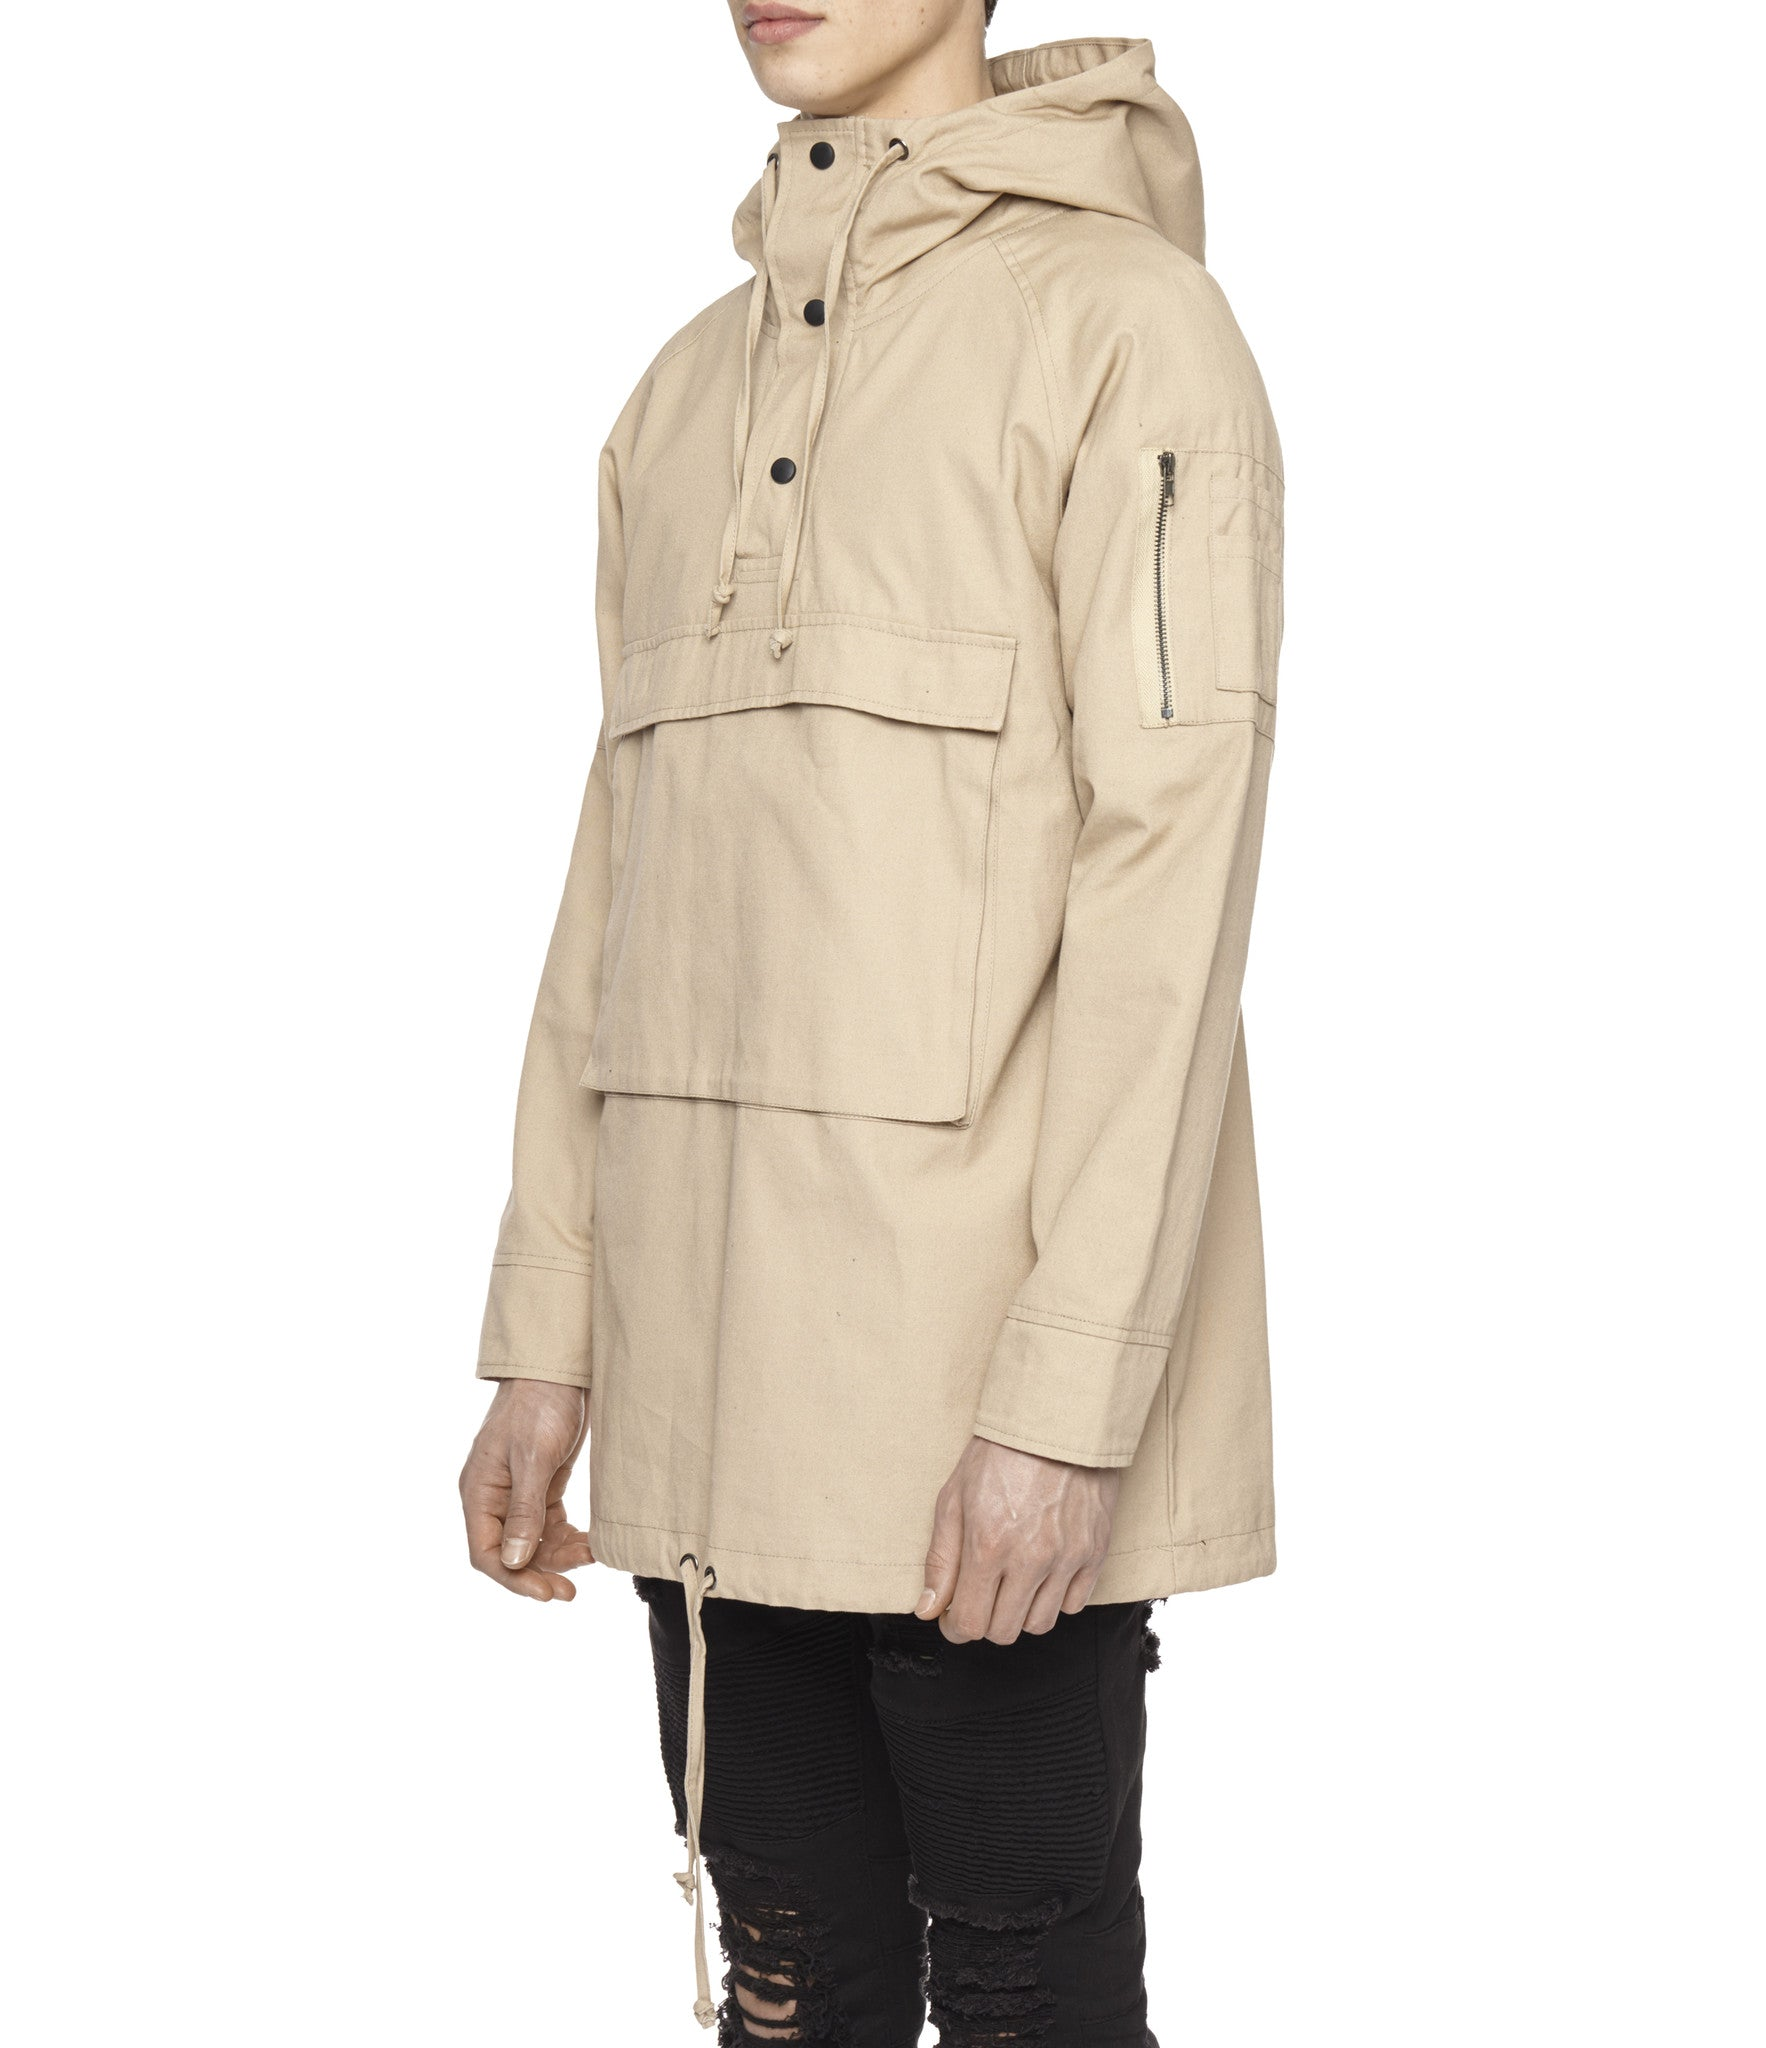 D22 Hooded Pullover Anorak  - Beige - underated london - underatedco - 4